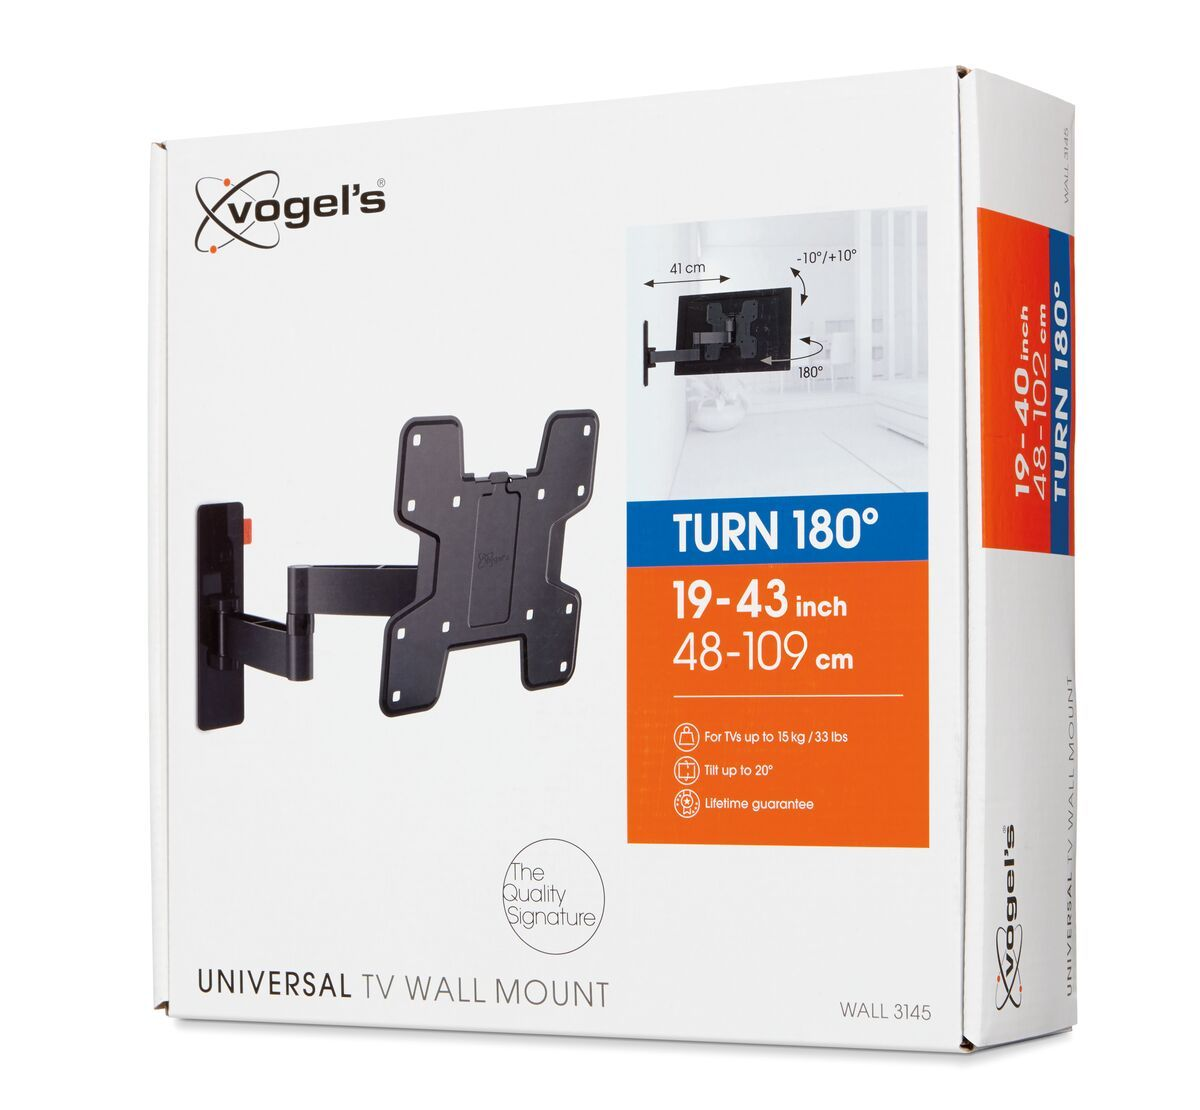 Vogel's WALL 3145 Full-Motion TV Wall Mount (black) - Suitable for Full motion (up to 180°) - Suitable for Tilt -10°/+10° - Suitable for Pack shot 3D